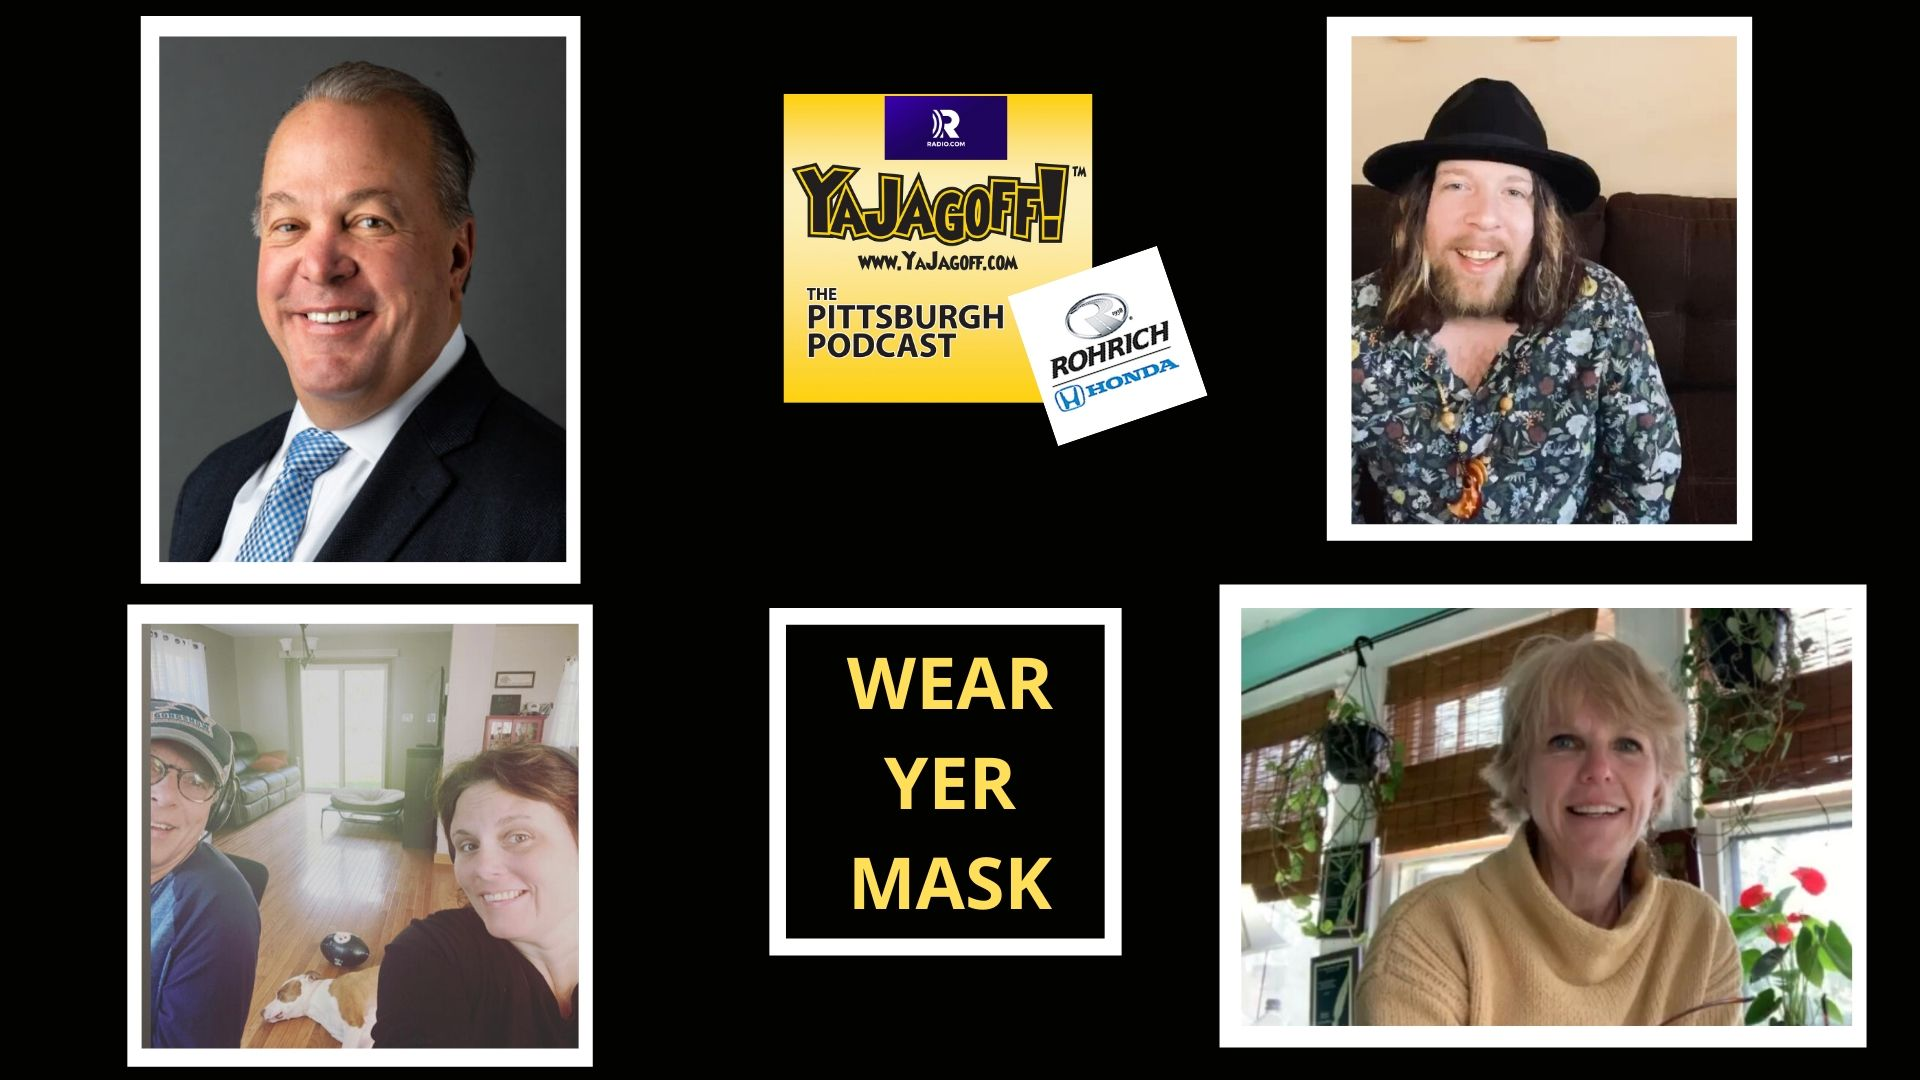 YaJagoff Podcast Collage